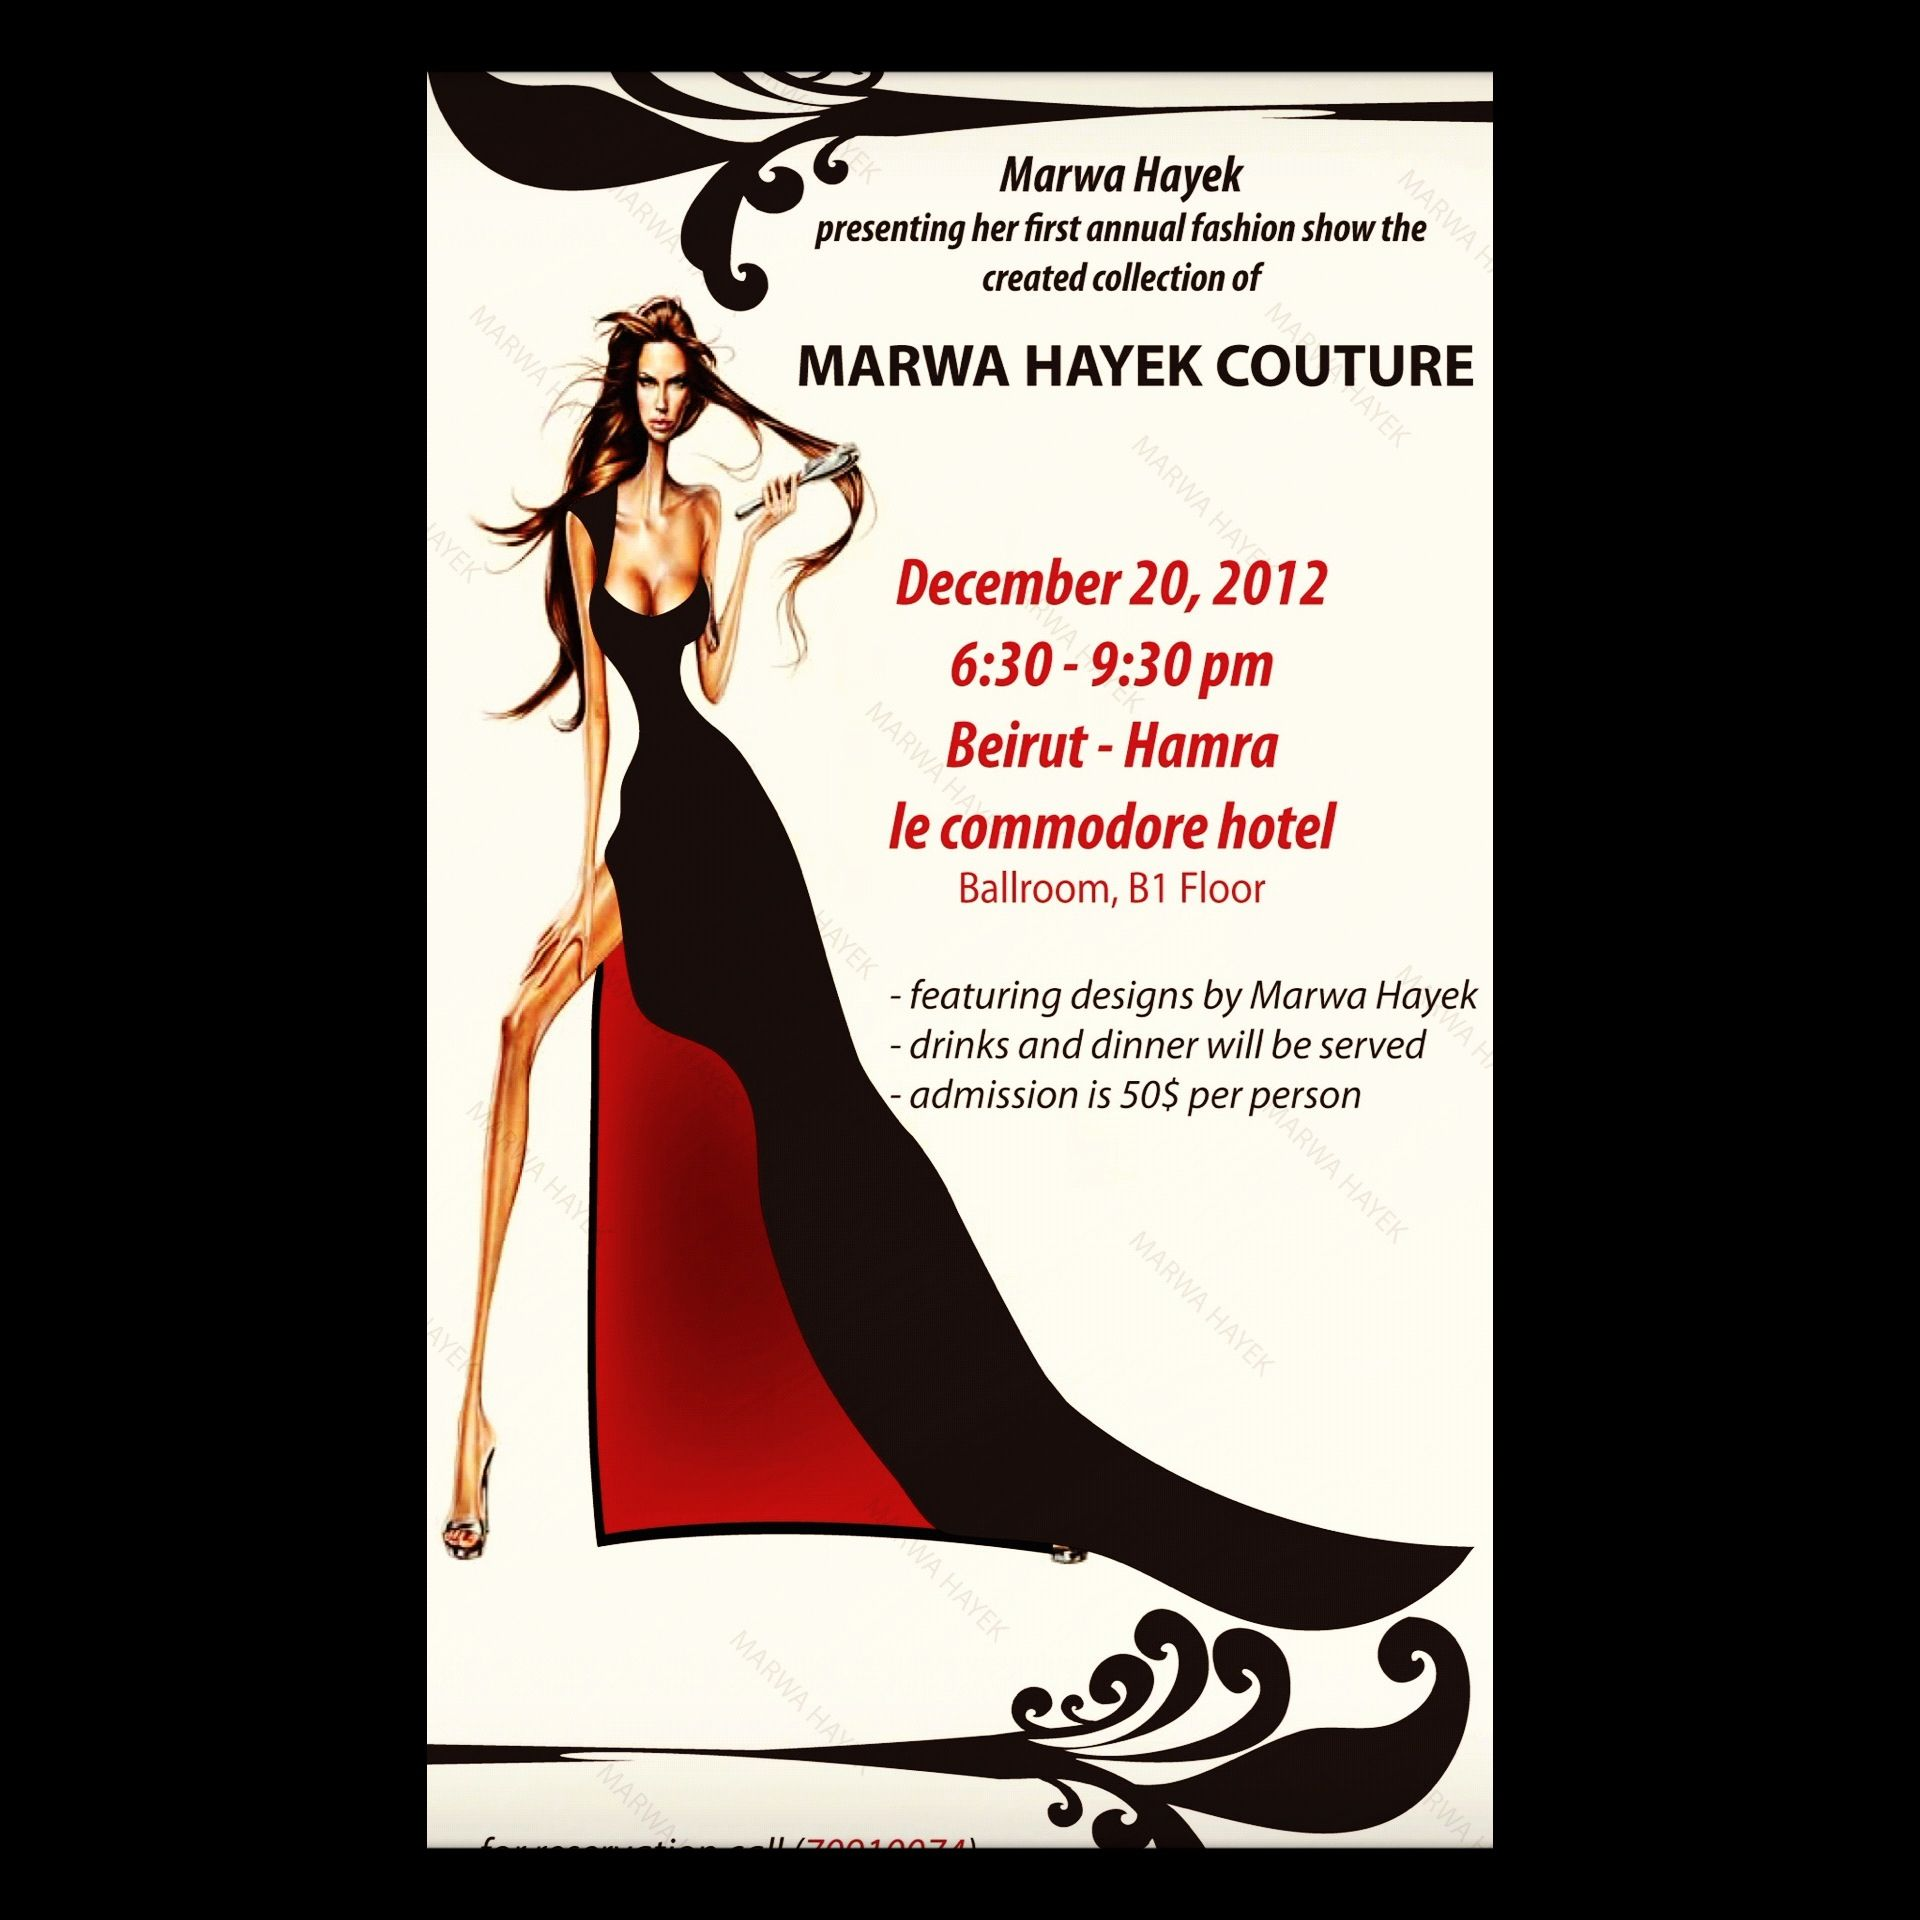 Marwa Hayek fashion show invitation card